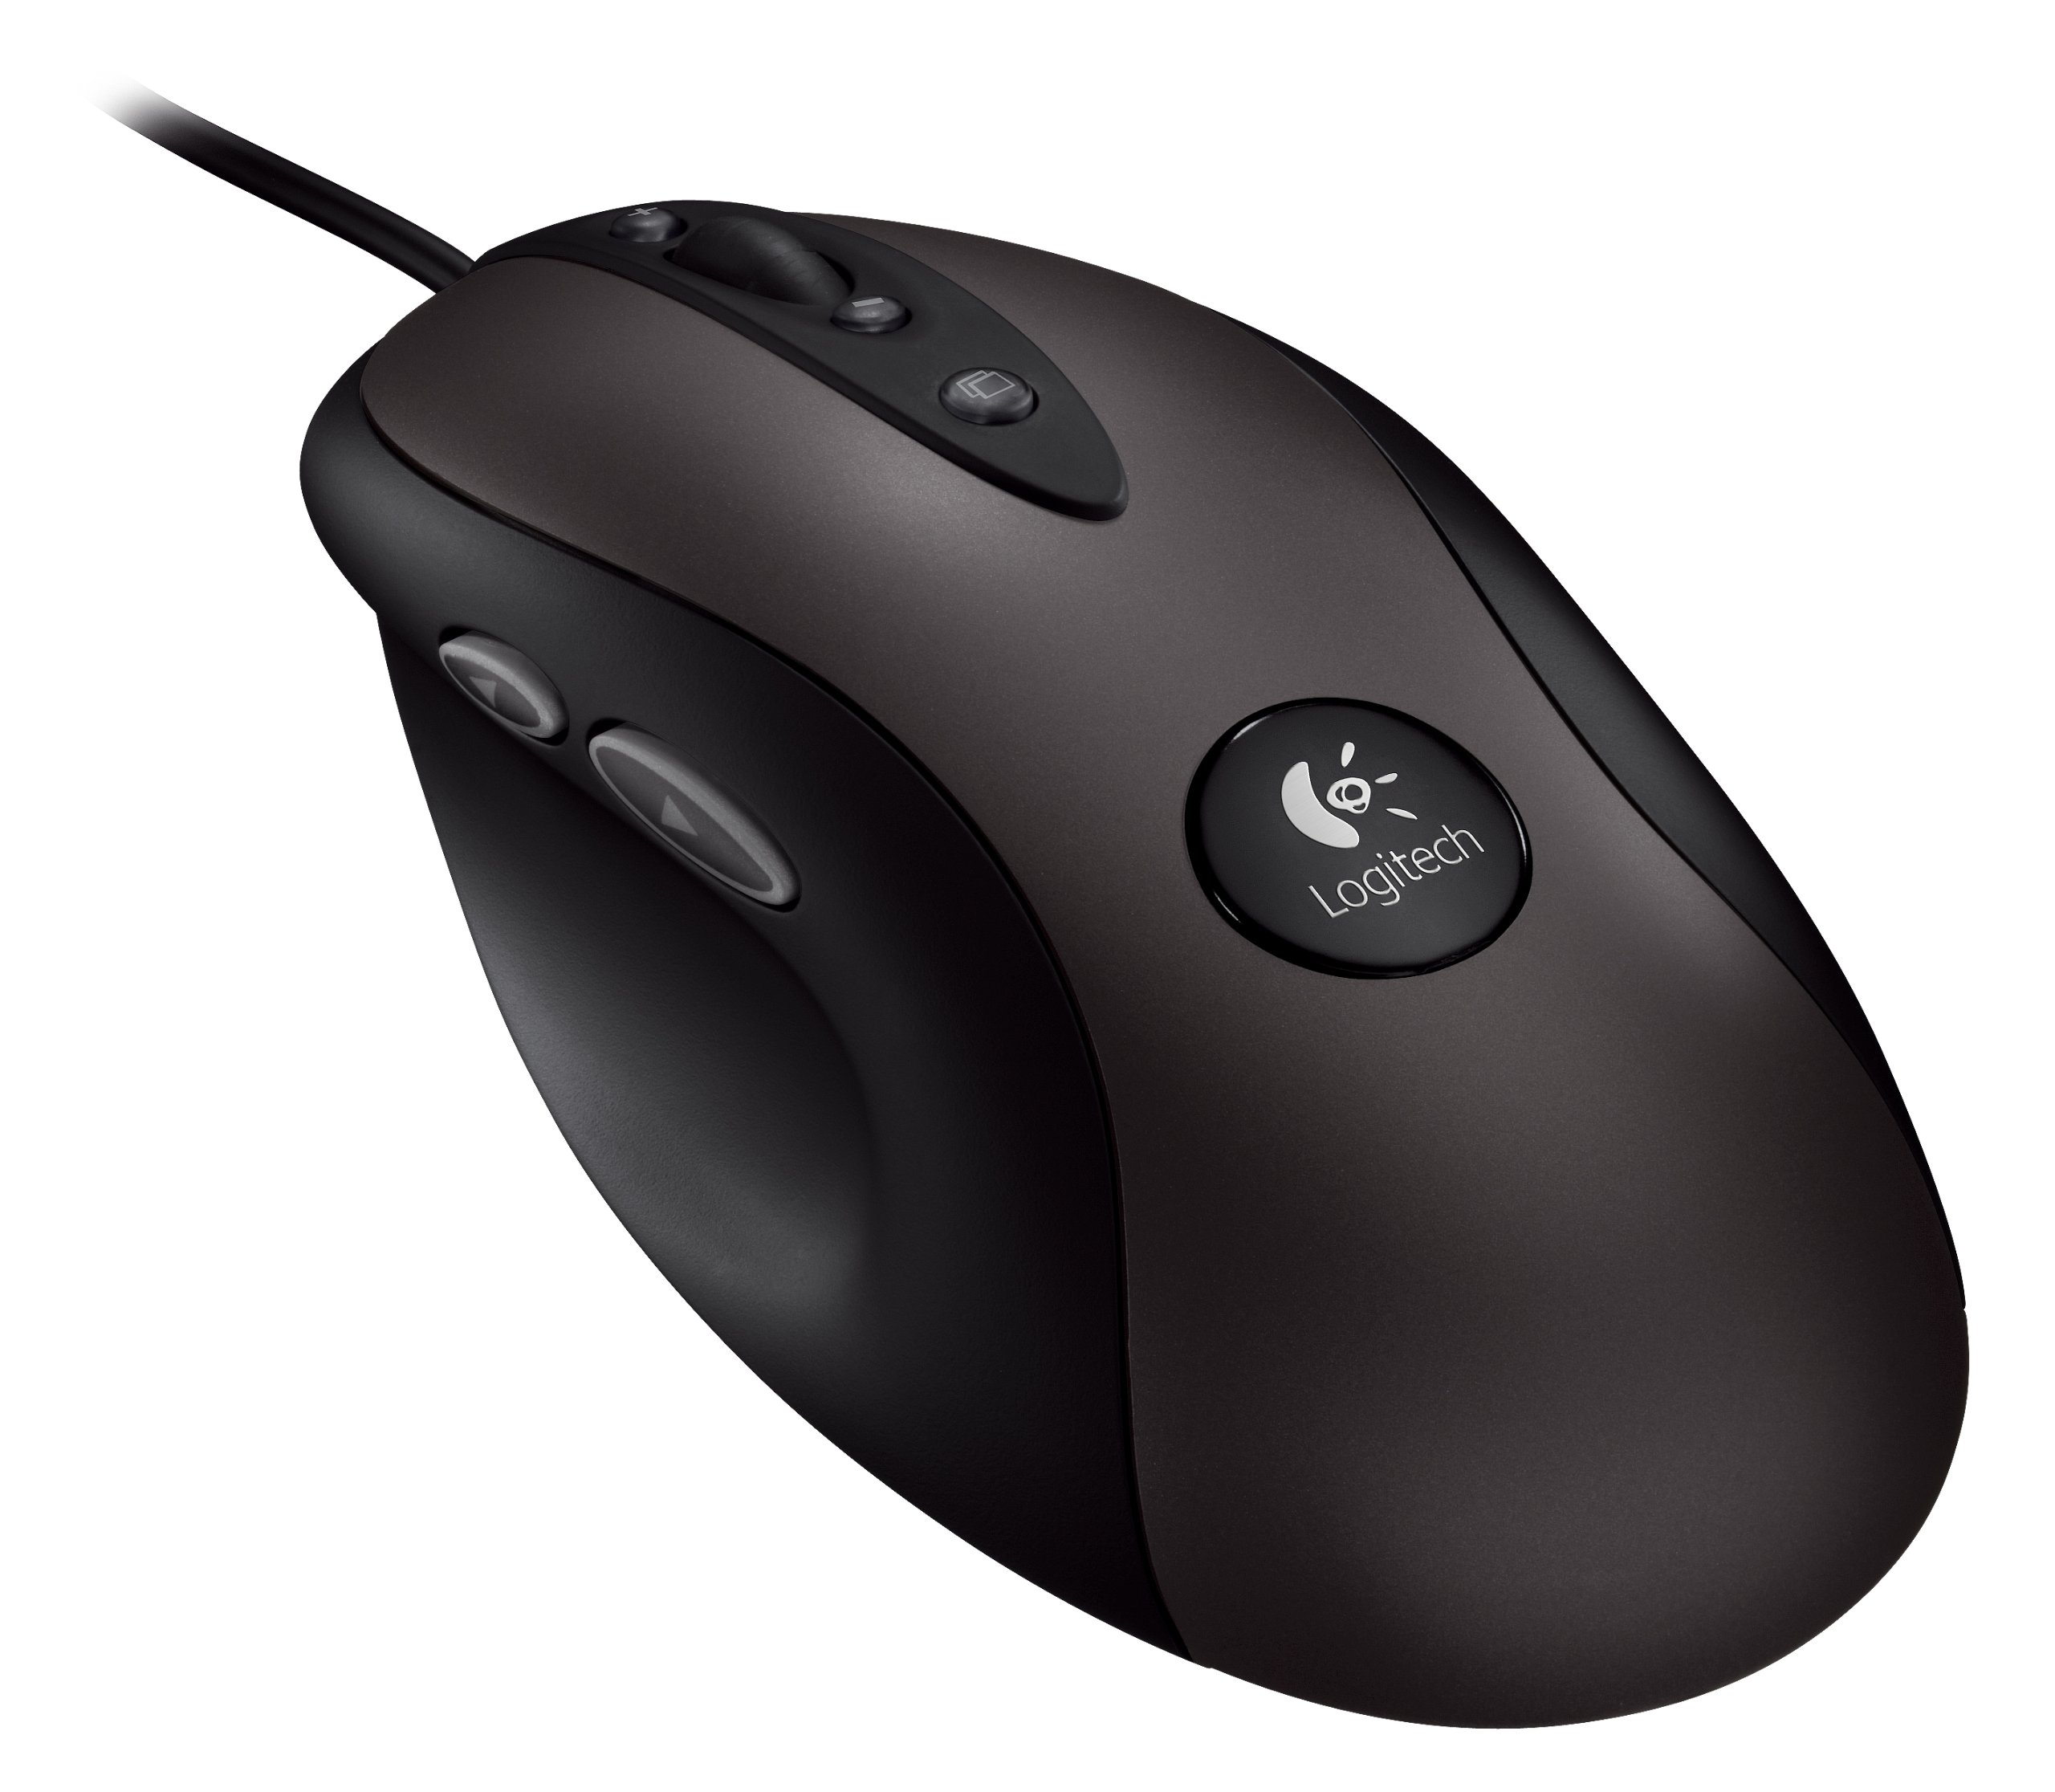 Mouse Gamer : Logitech G400 Optico 910-002277